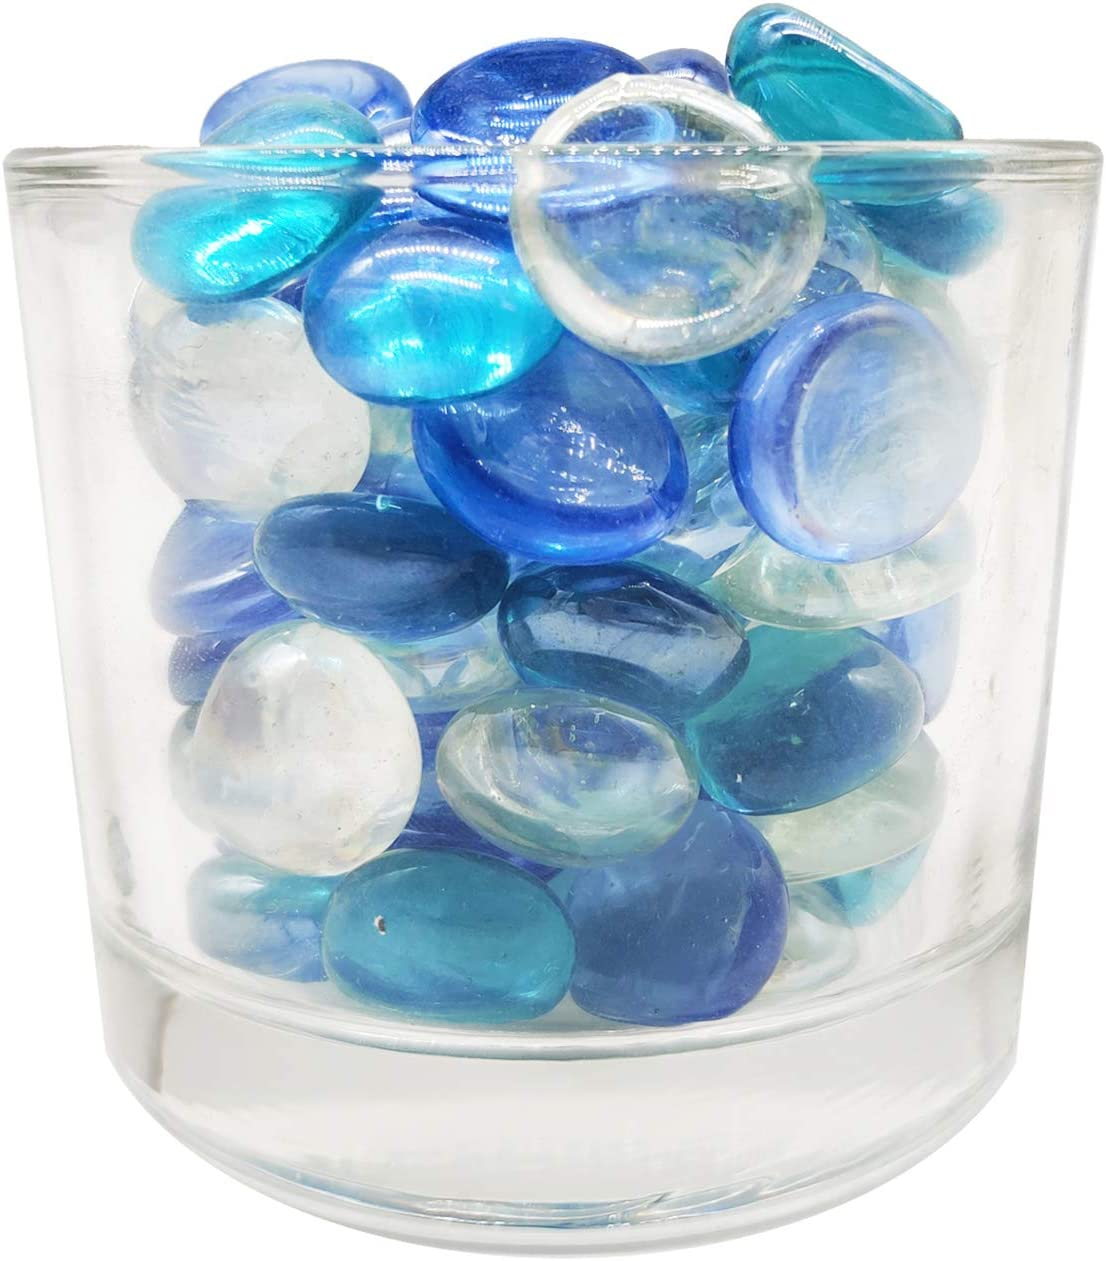 100 Pcs Decorative Glass Gems Mosaics Mixed Color Sea Blue Clear and Royal Blue for Vase Fillers,Aquarium,Crafts,Fountain Items